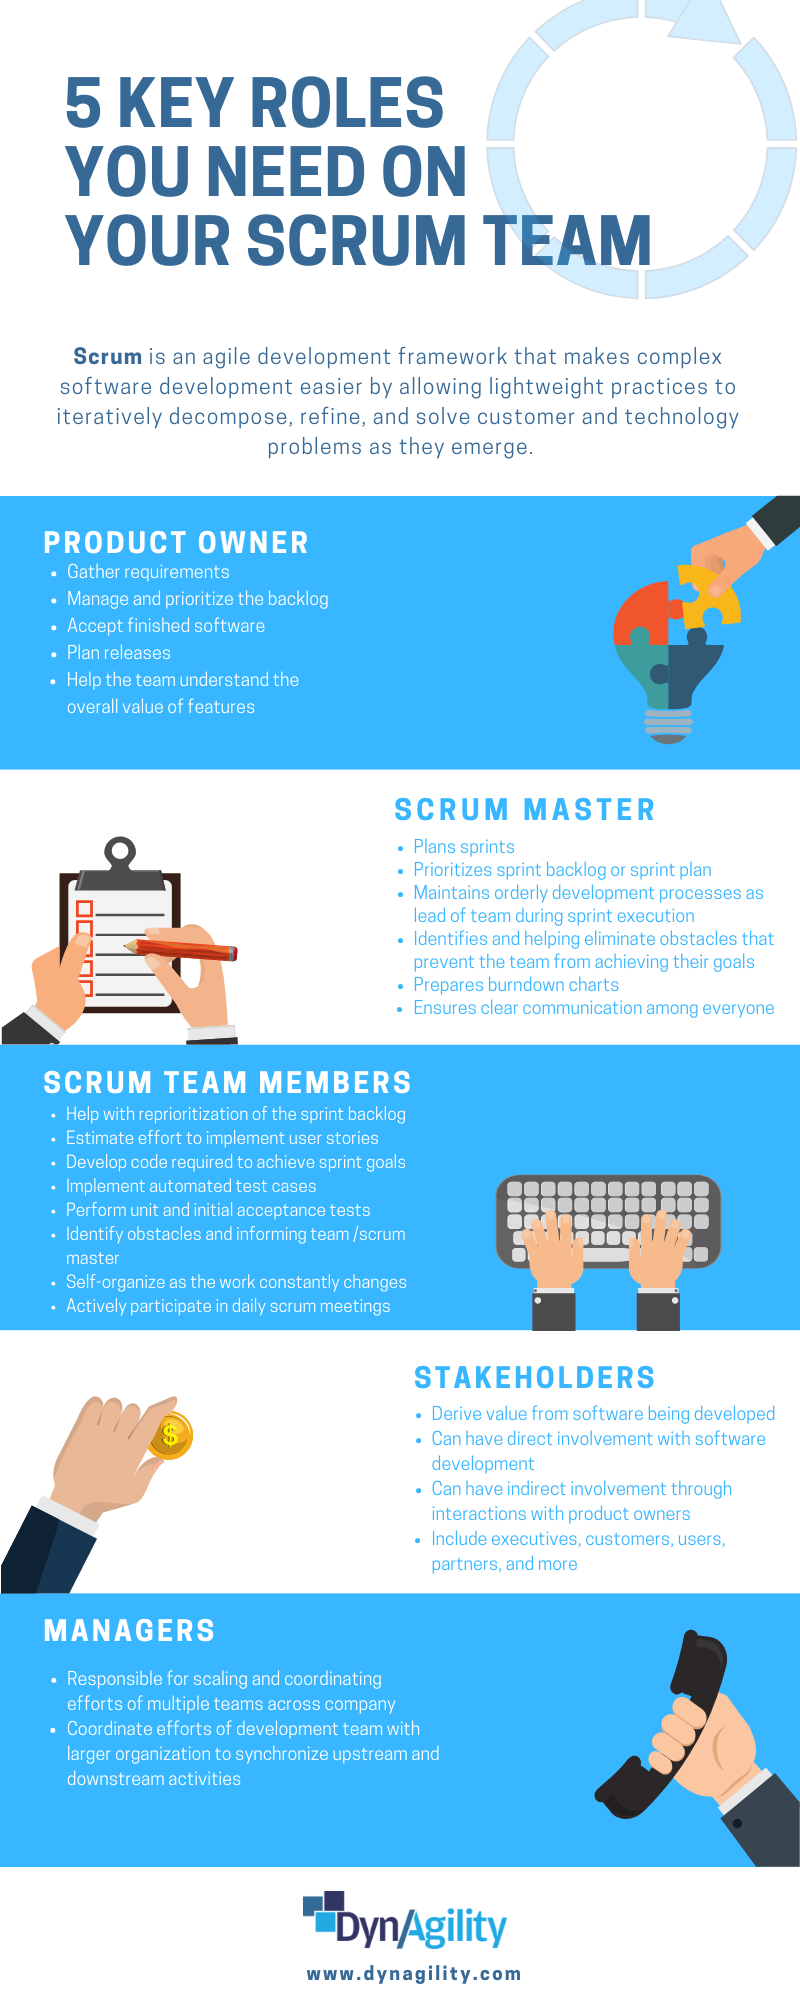 Who's Playing? A Brief Guide To The Roles of Agile Scrum